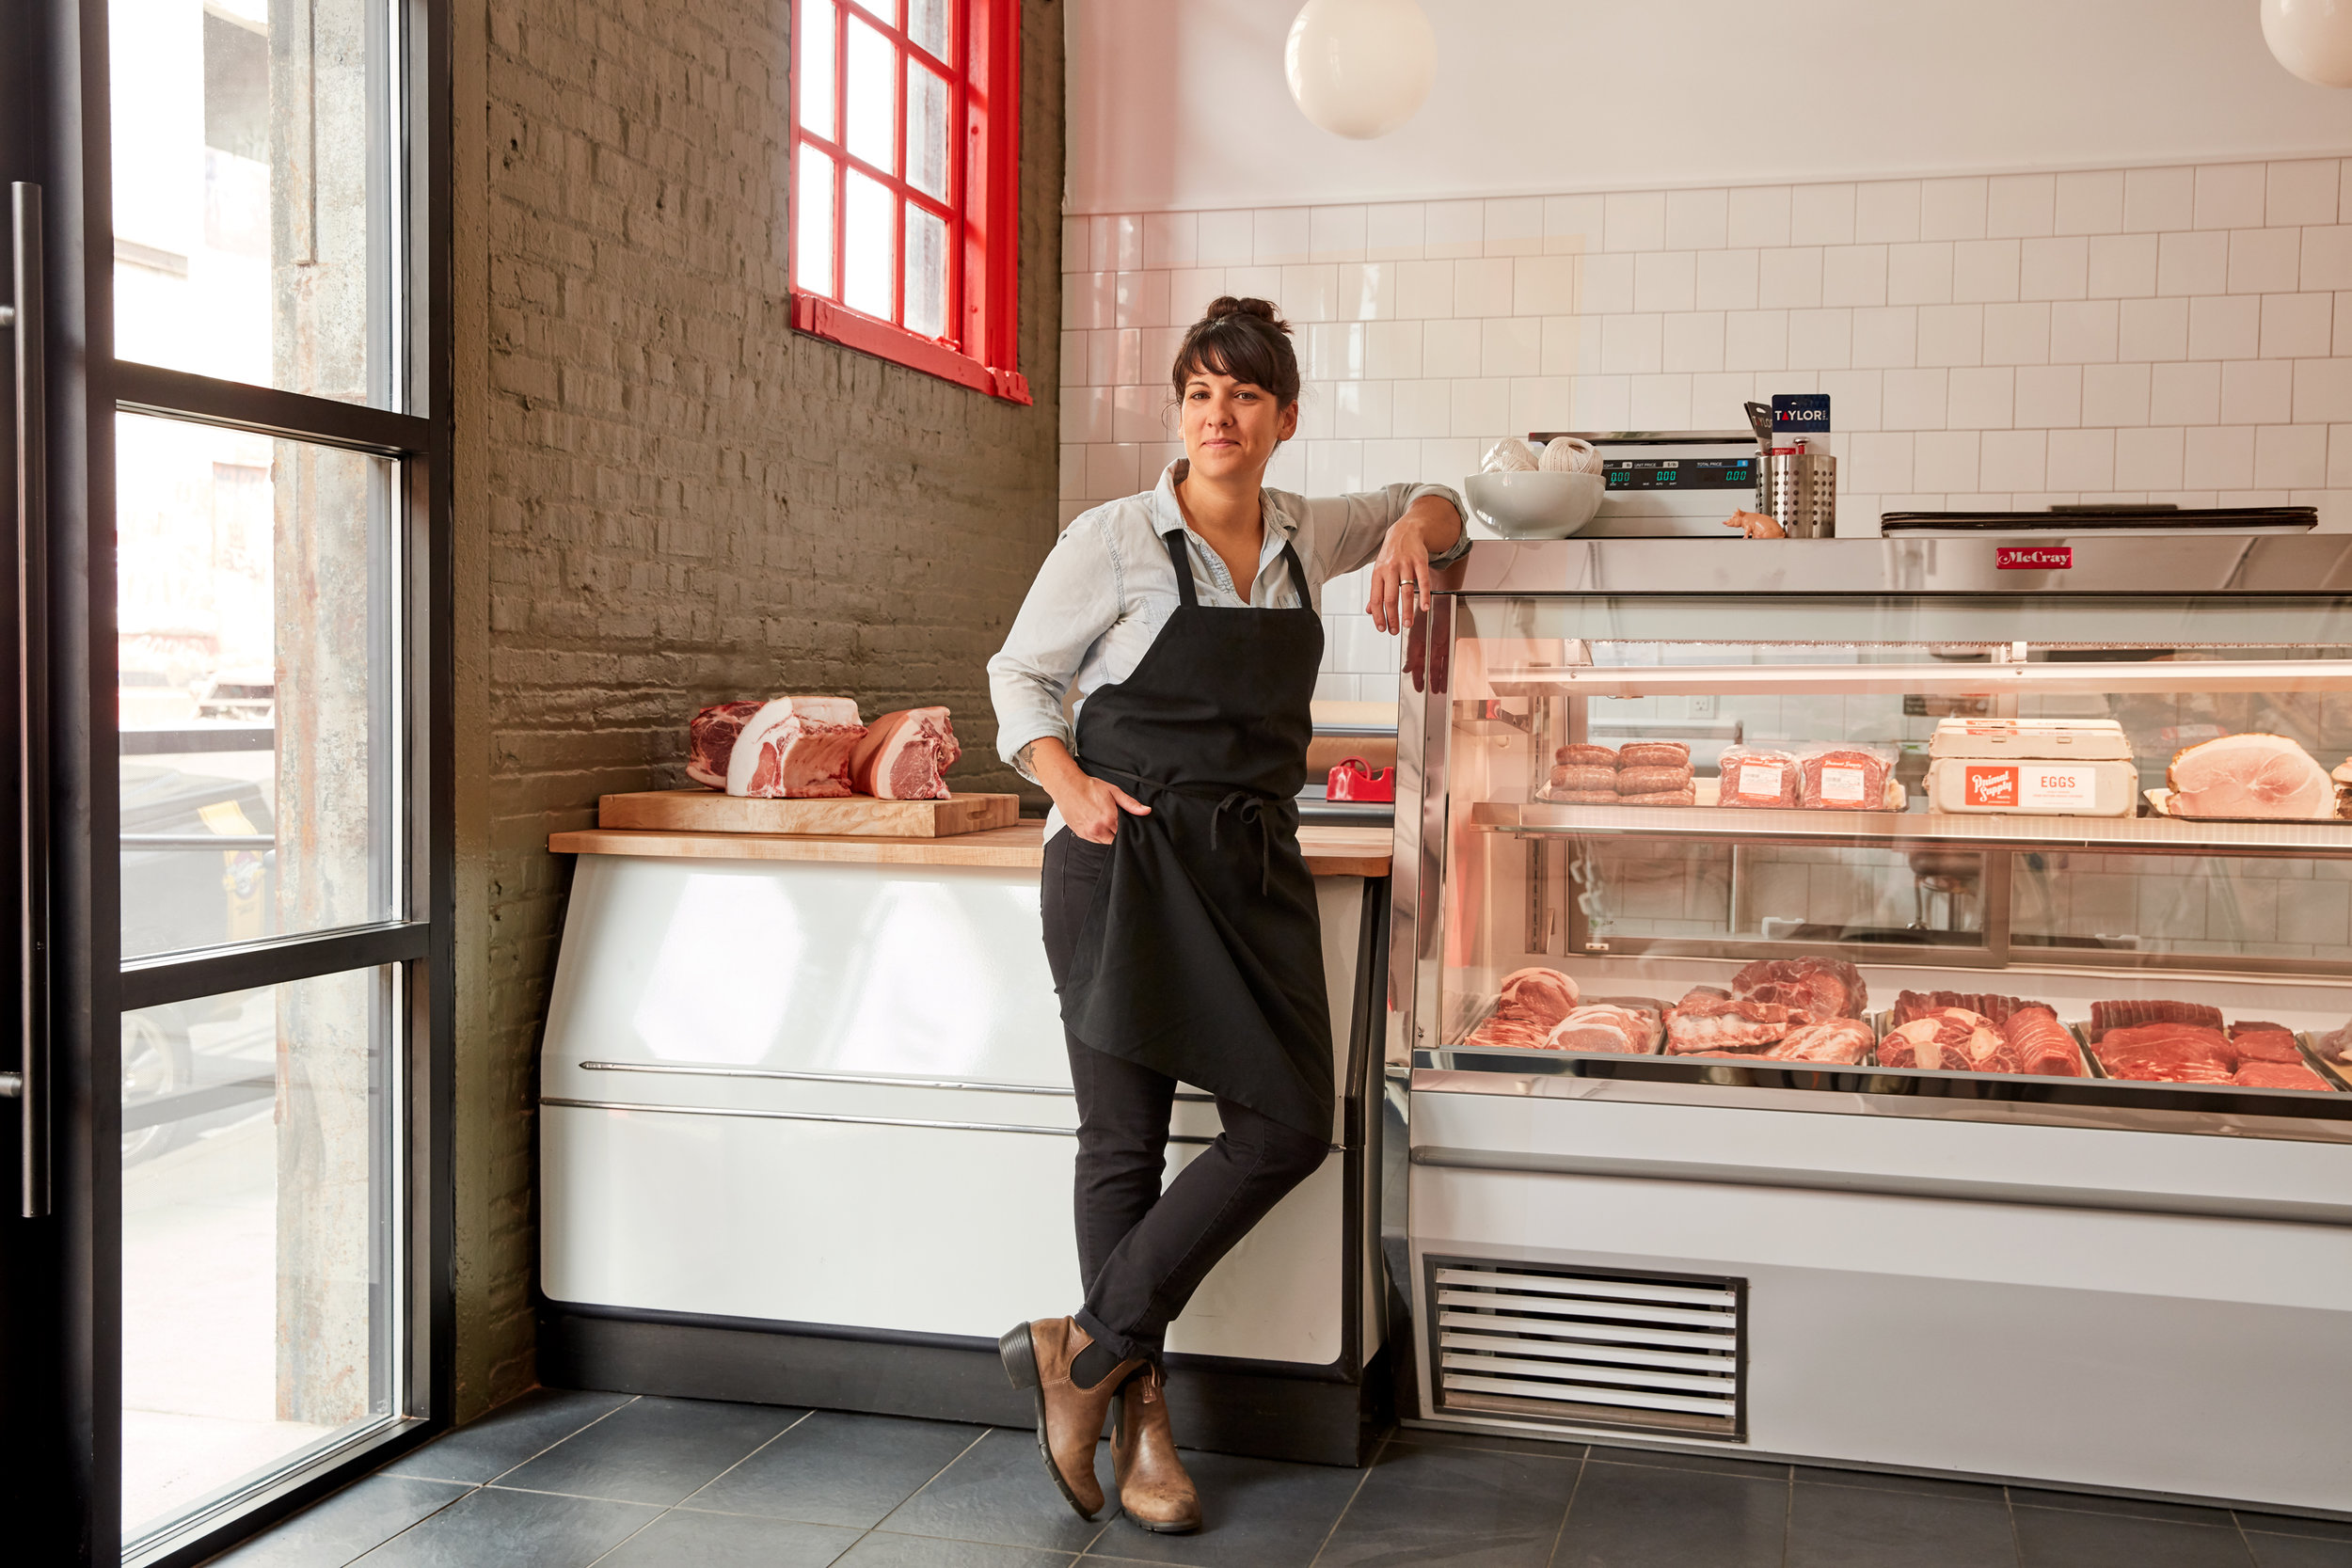 Heather Marold Thomason pictured at our Brewerytown Butchery & Market by Jason Varney